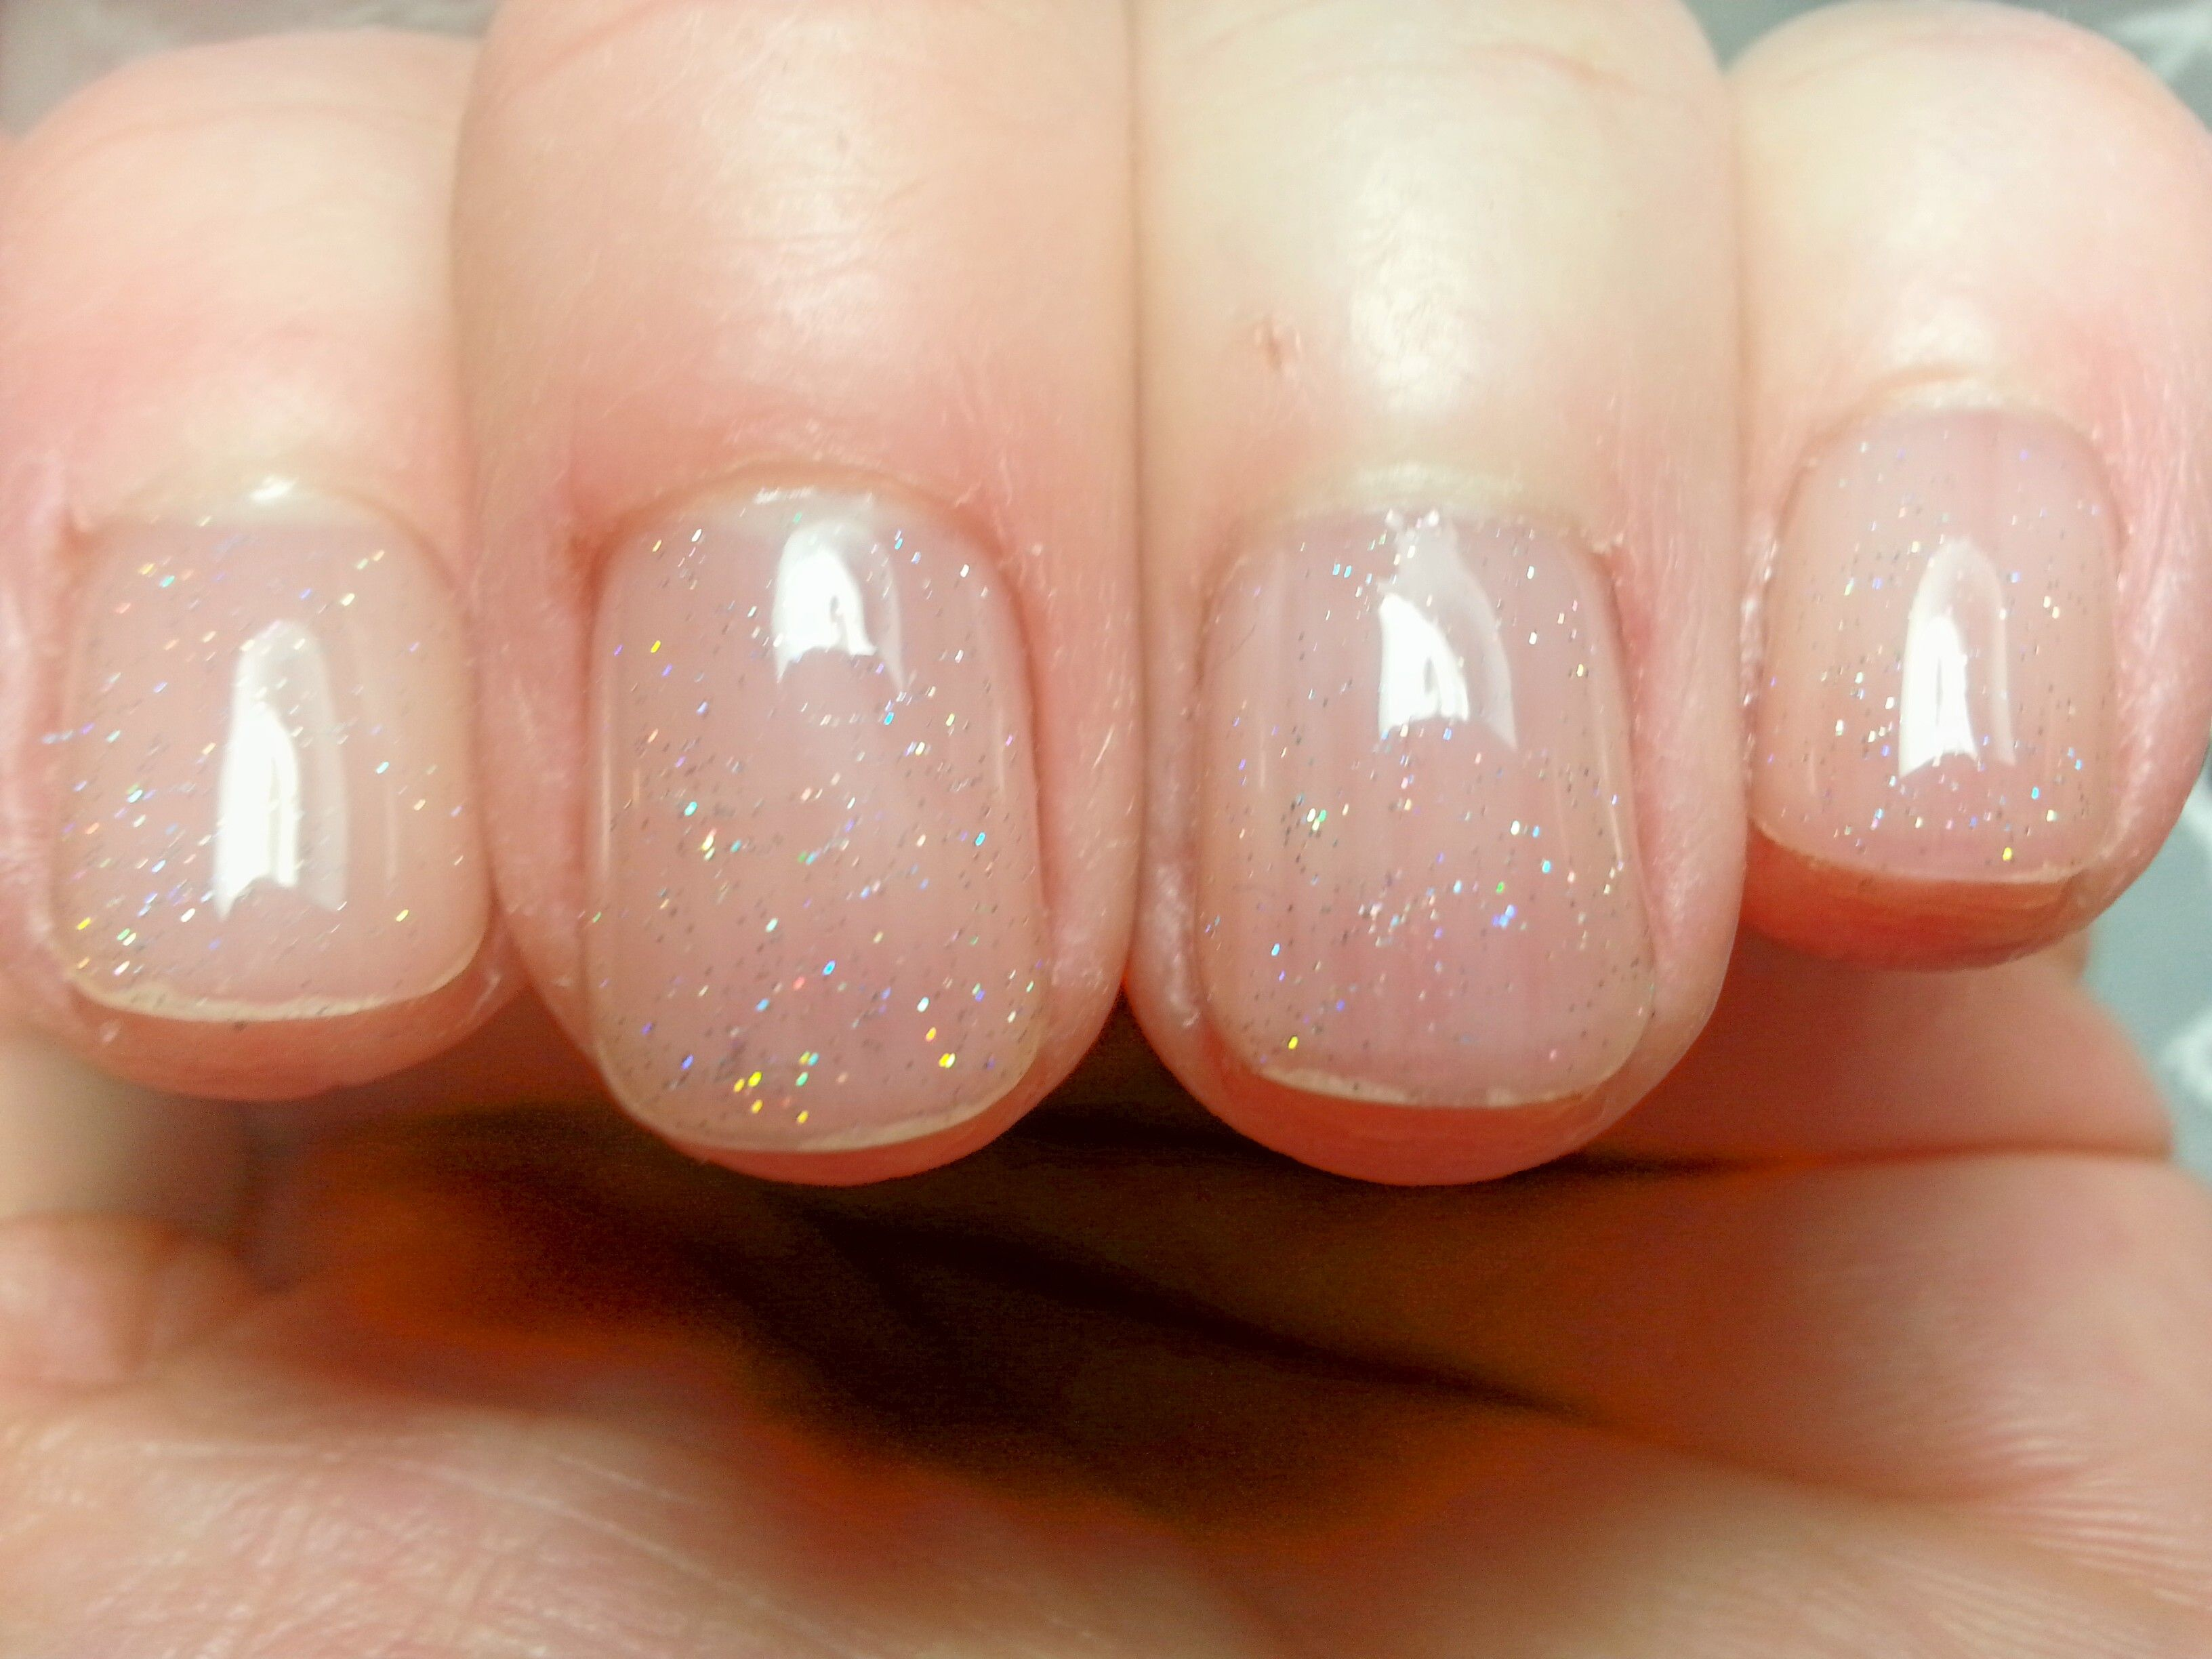 Nails Short Gel Manicure Clear With Just A Touch Of Glitter Adds